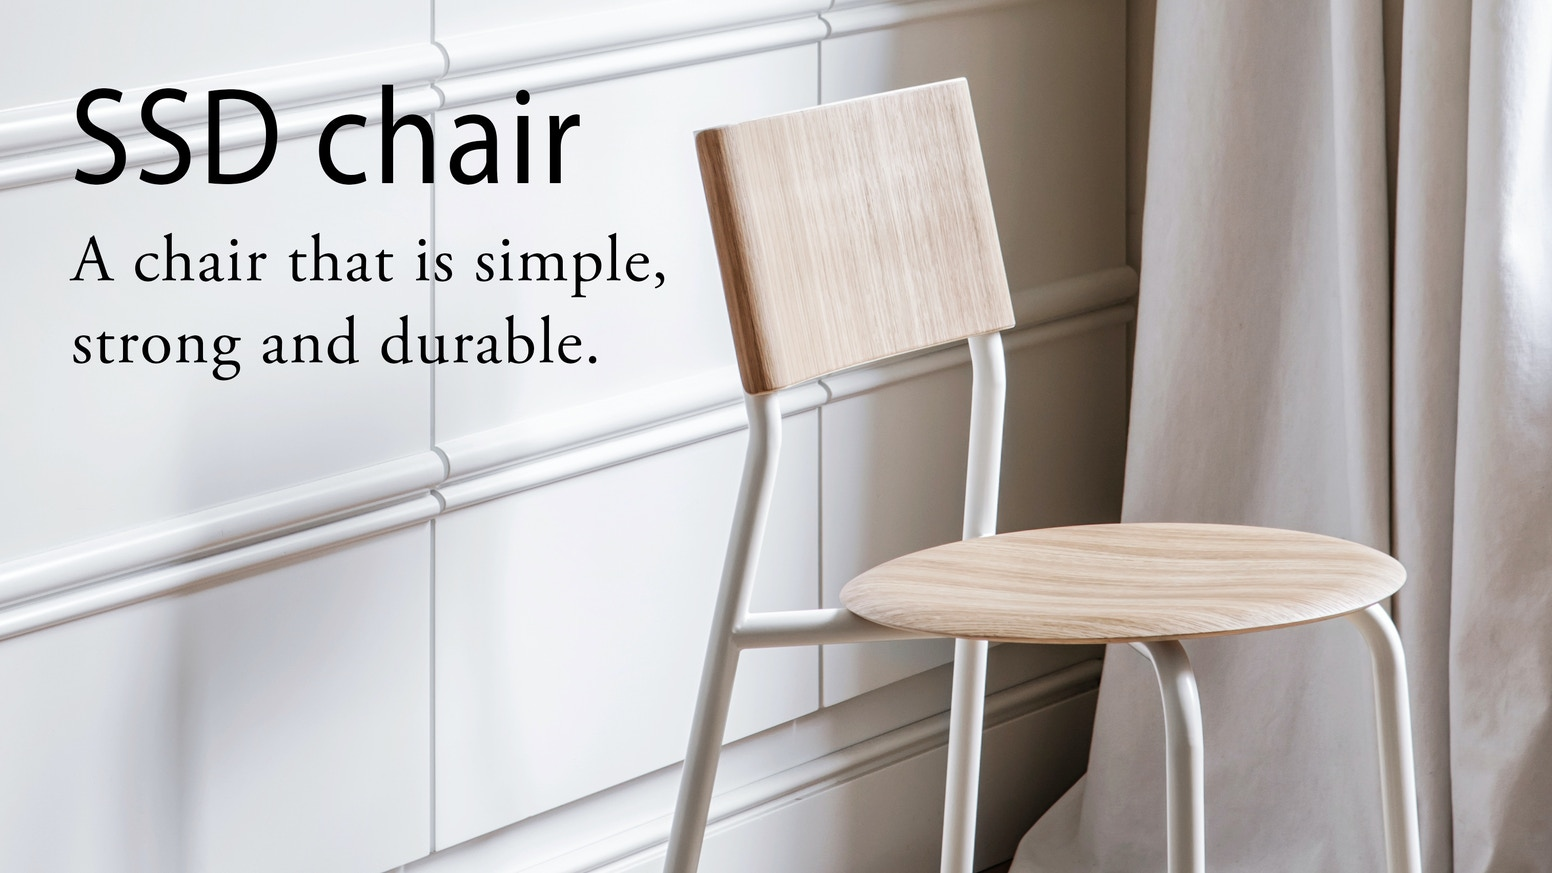 The SSD chair is SIMPLE, STRONG and DURABLE. Easy-to-assemble, long-lasting and made with sustainable high-quality materials.